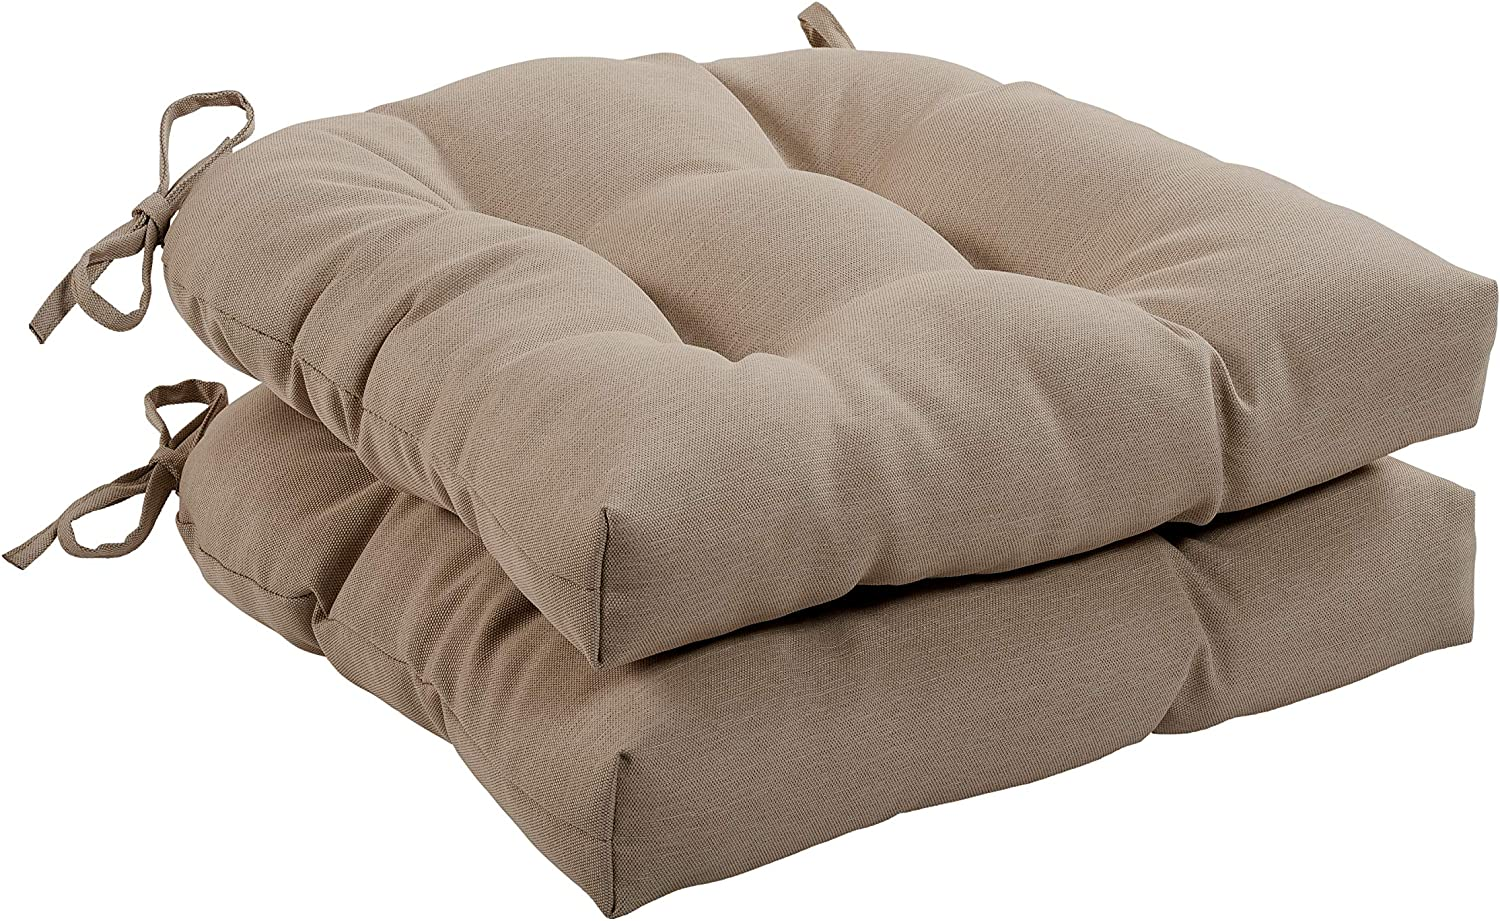 Quality Outdoor Living 29-KH1SCH Tufted Chair Cushion-Set of 2, Khaki